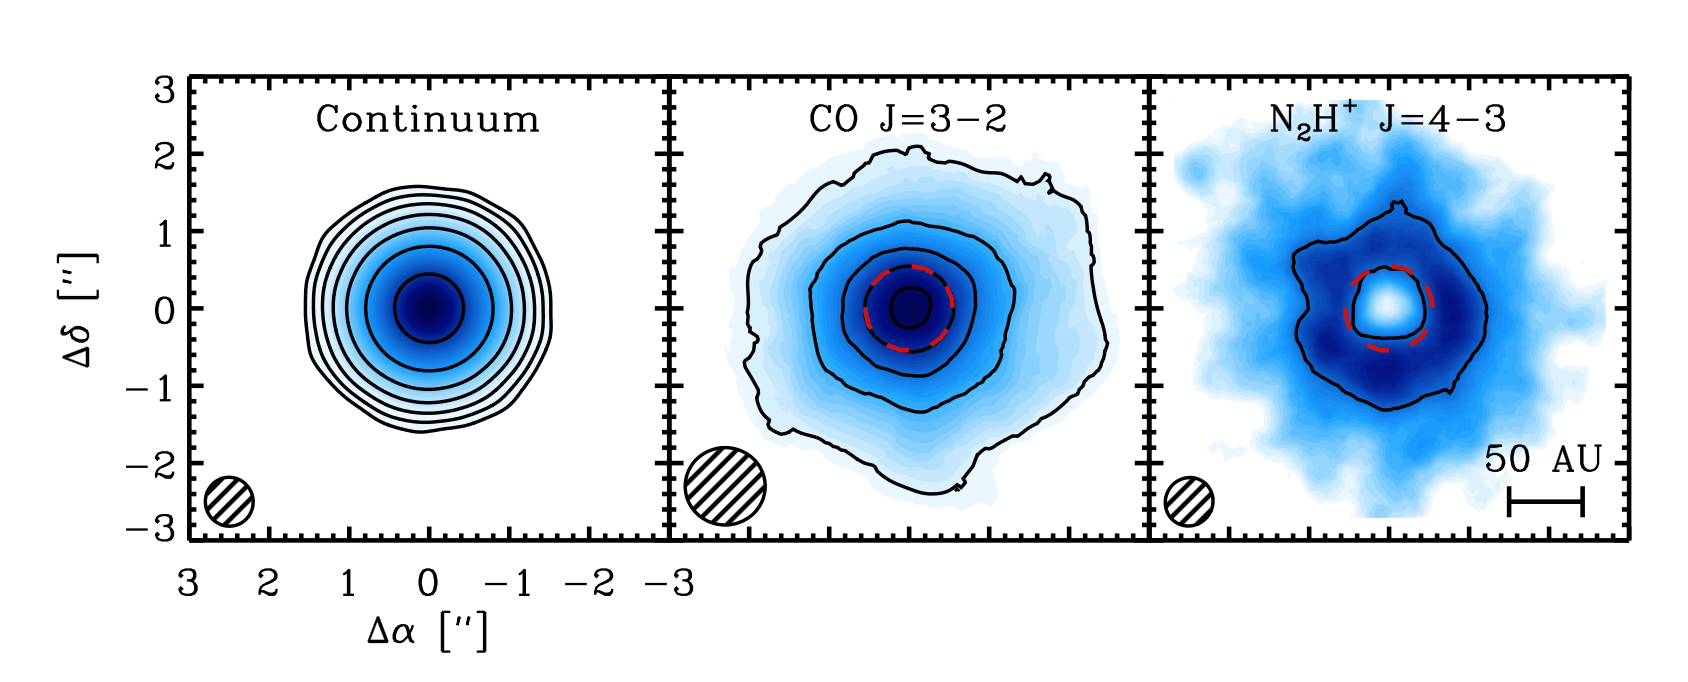 fig4.6